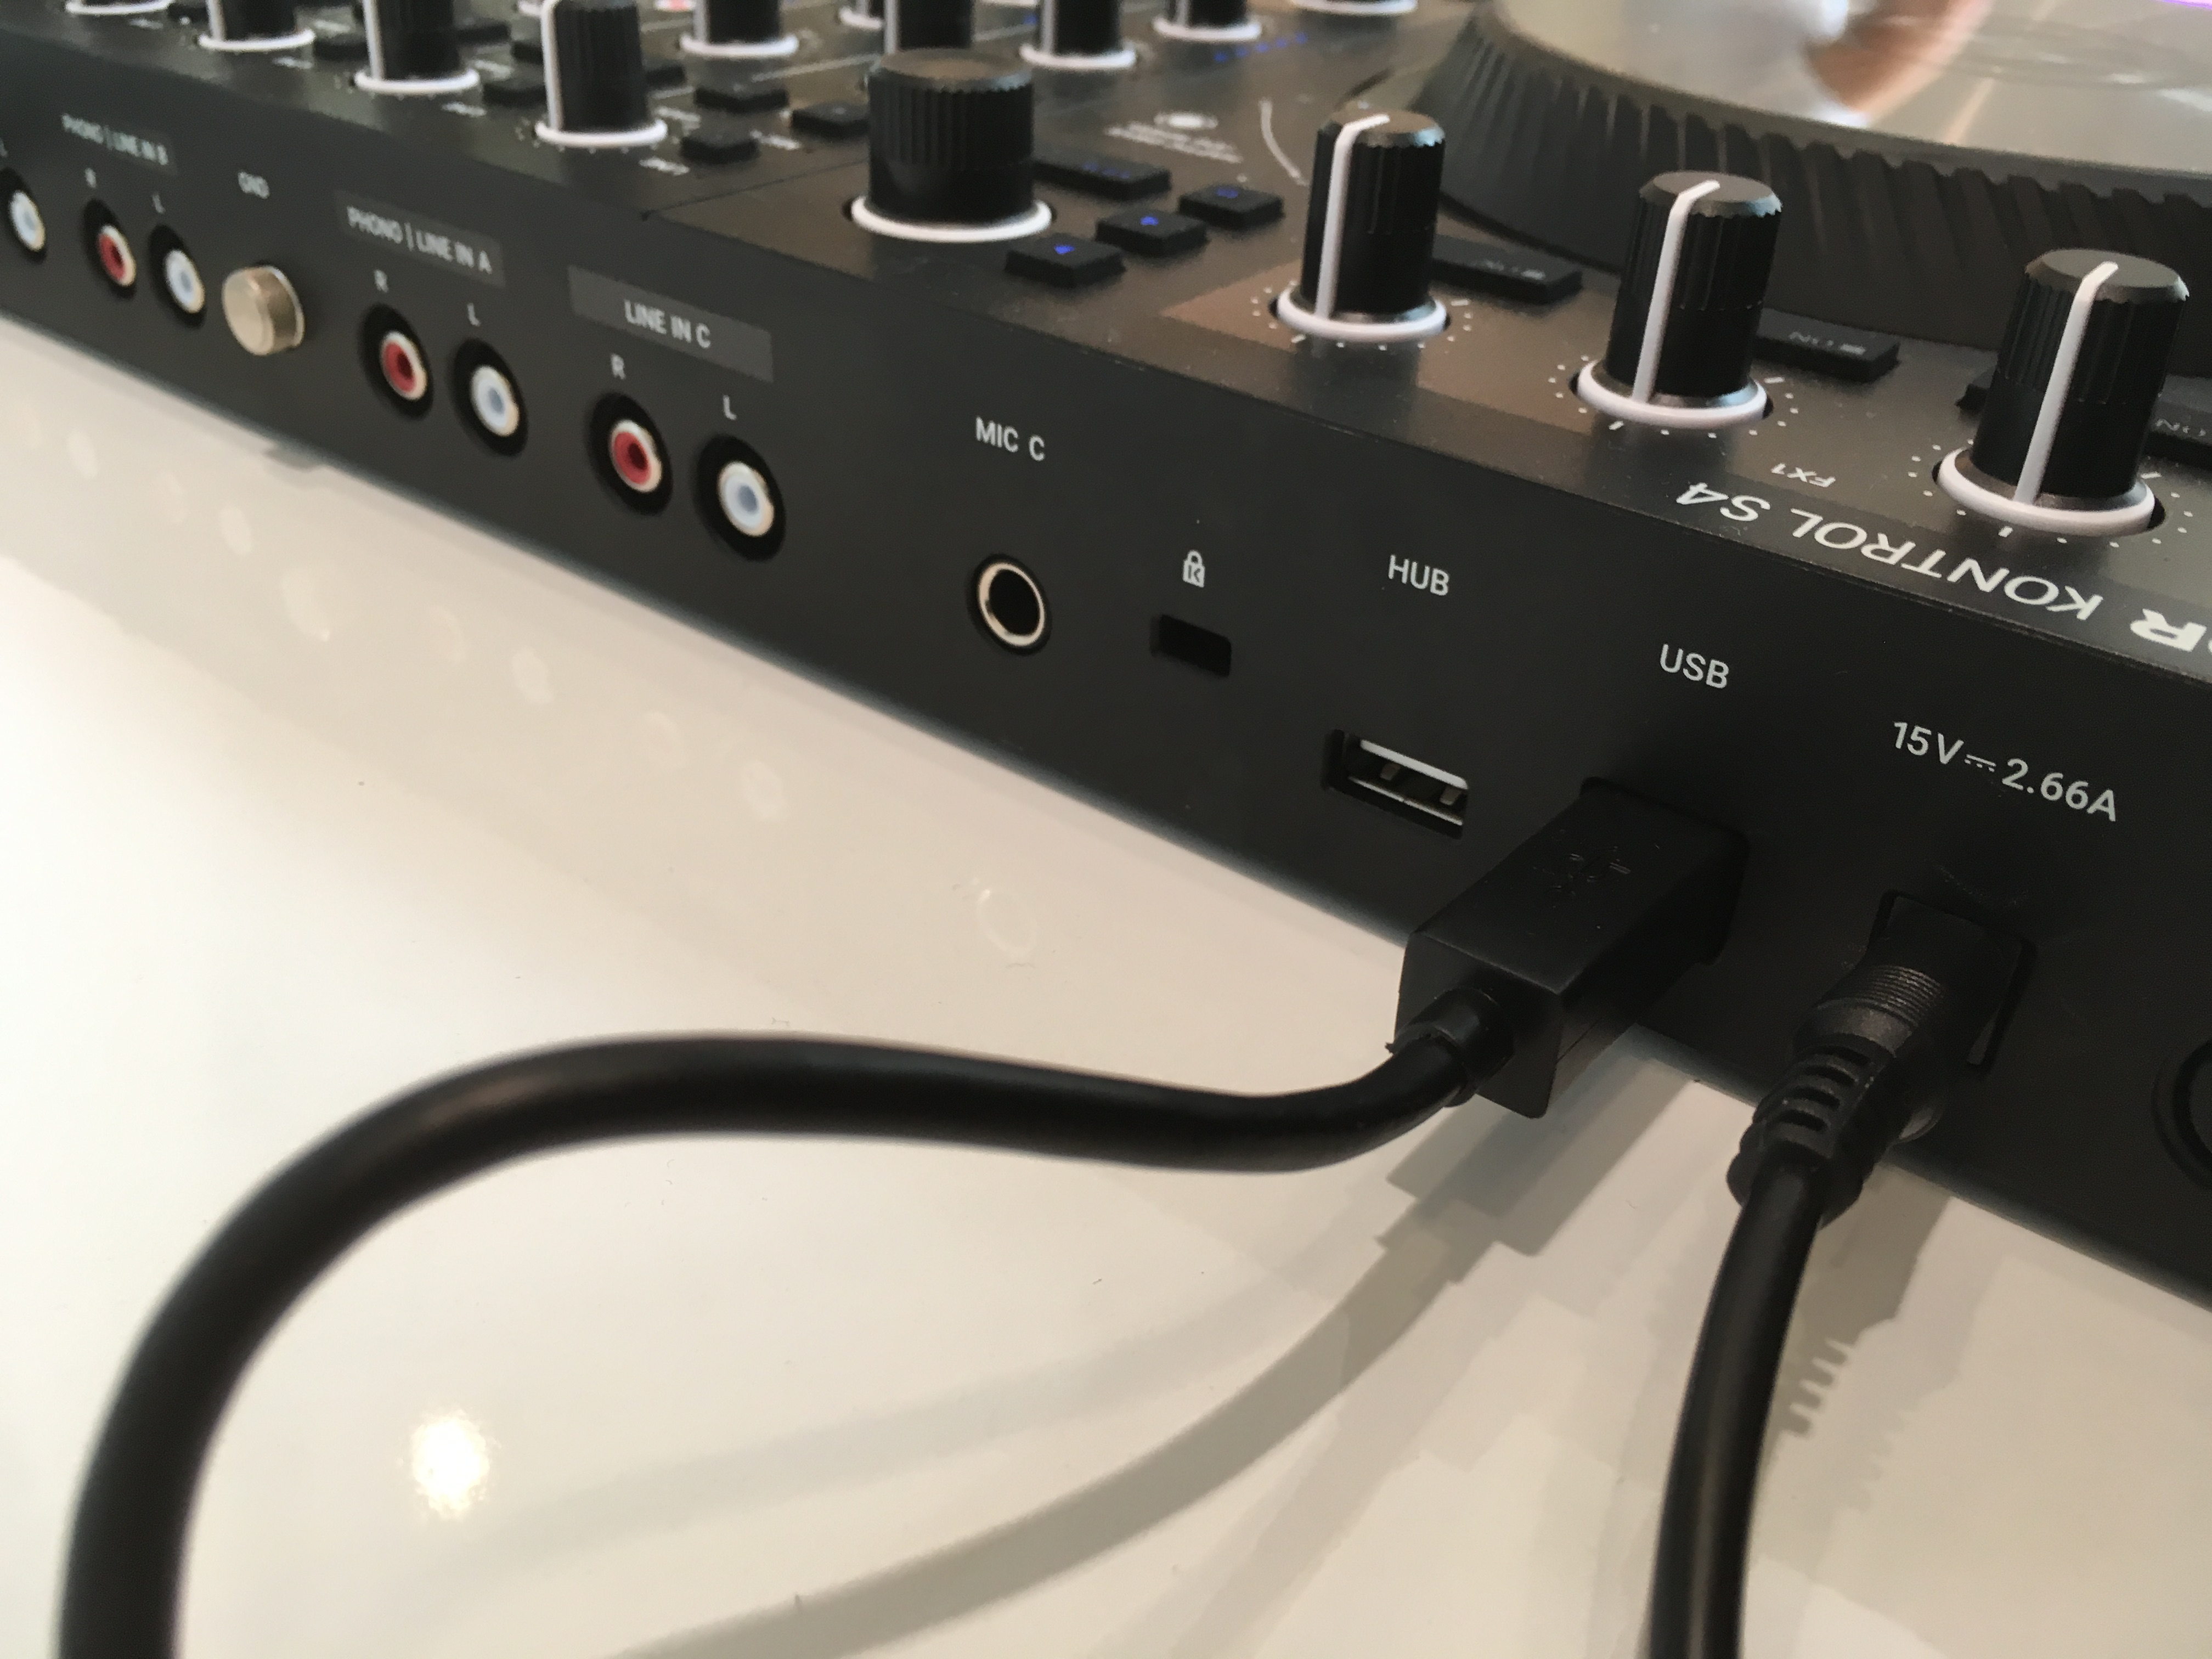 First Look: Native Instruments Traktor MK3 Controller